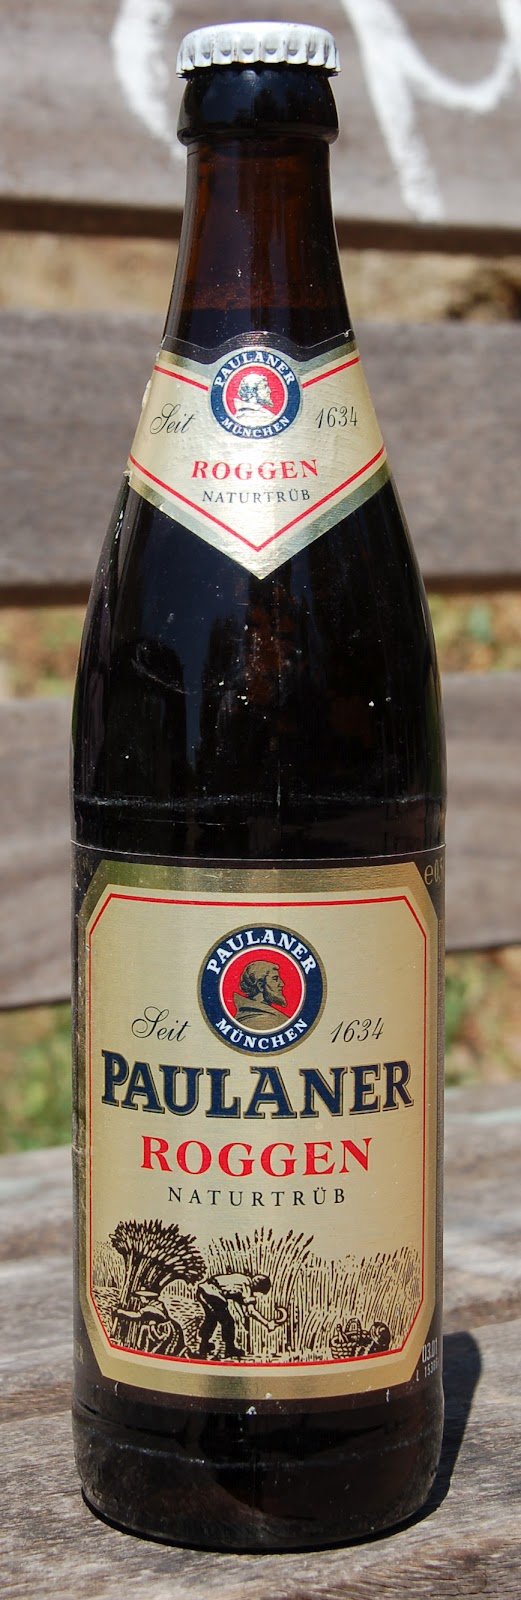 Image result for Paulaner Roggen